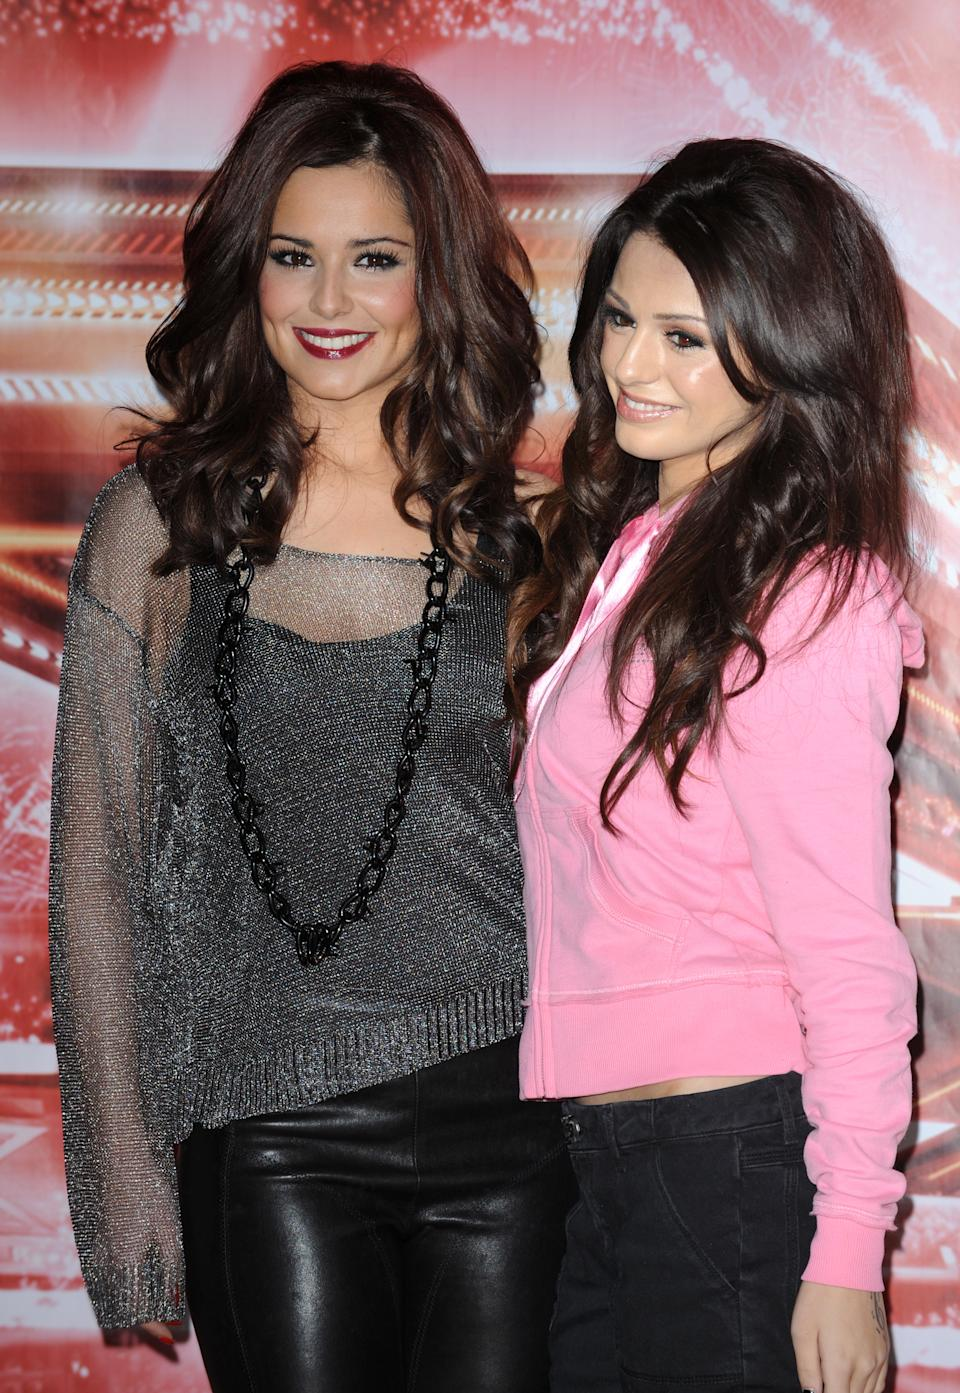 Cheryl Cole and Cher Lloyd during the X Factor Press Conference ahead of the live final on the 11th and 12th of December 2010, London